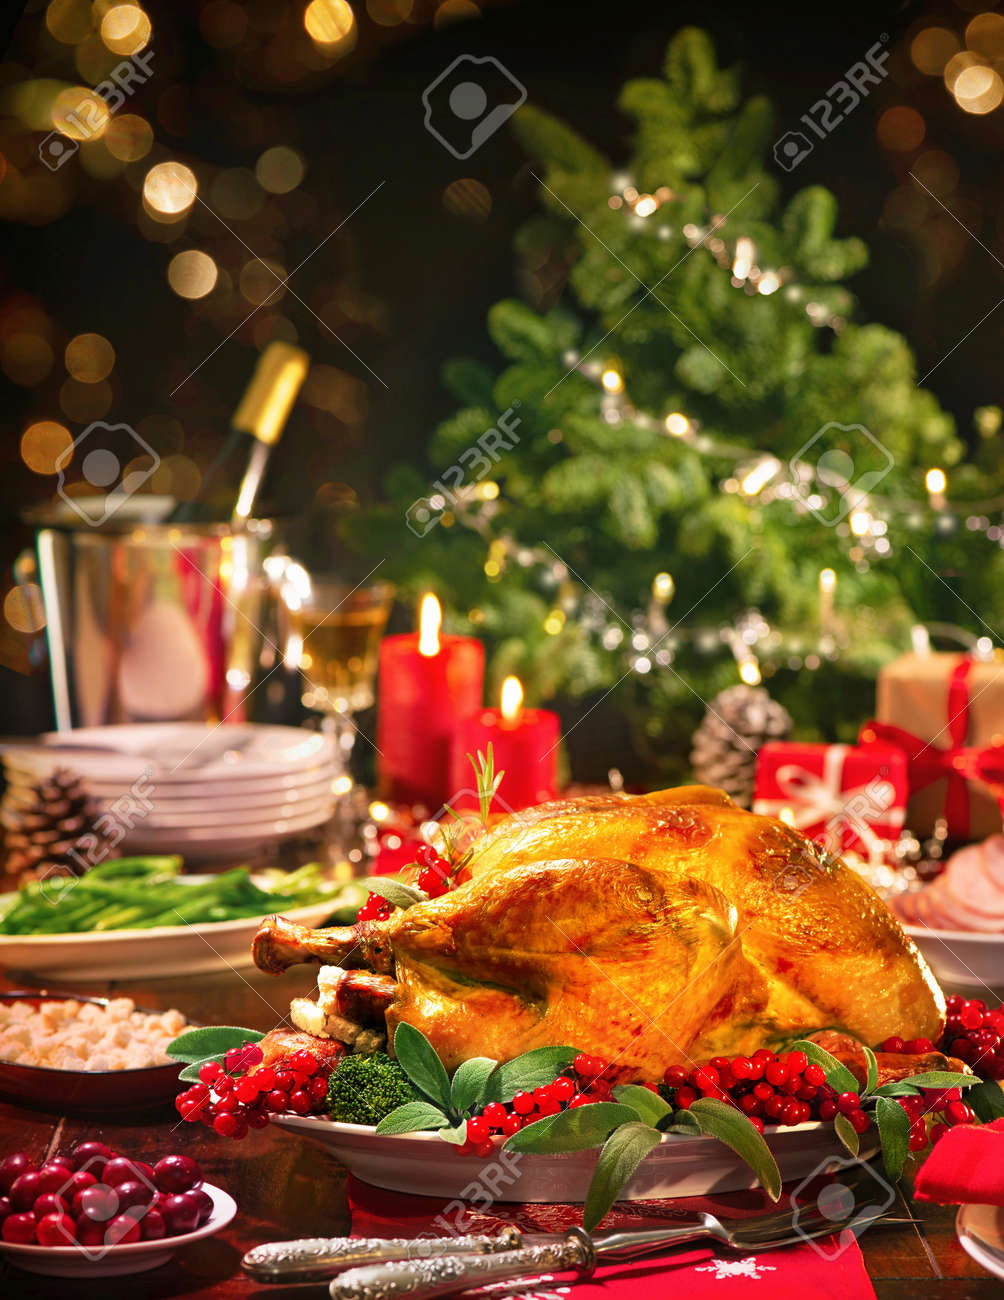 Christmas turkey dinner. Baked turkey garnished with red berries and sage leaves in front of Christmas tree and burning candles - 129613350